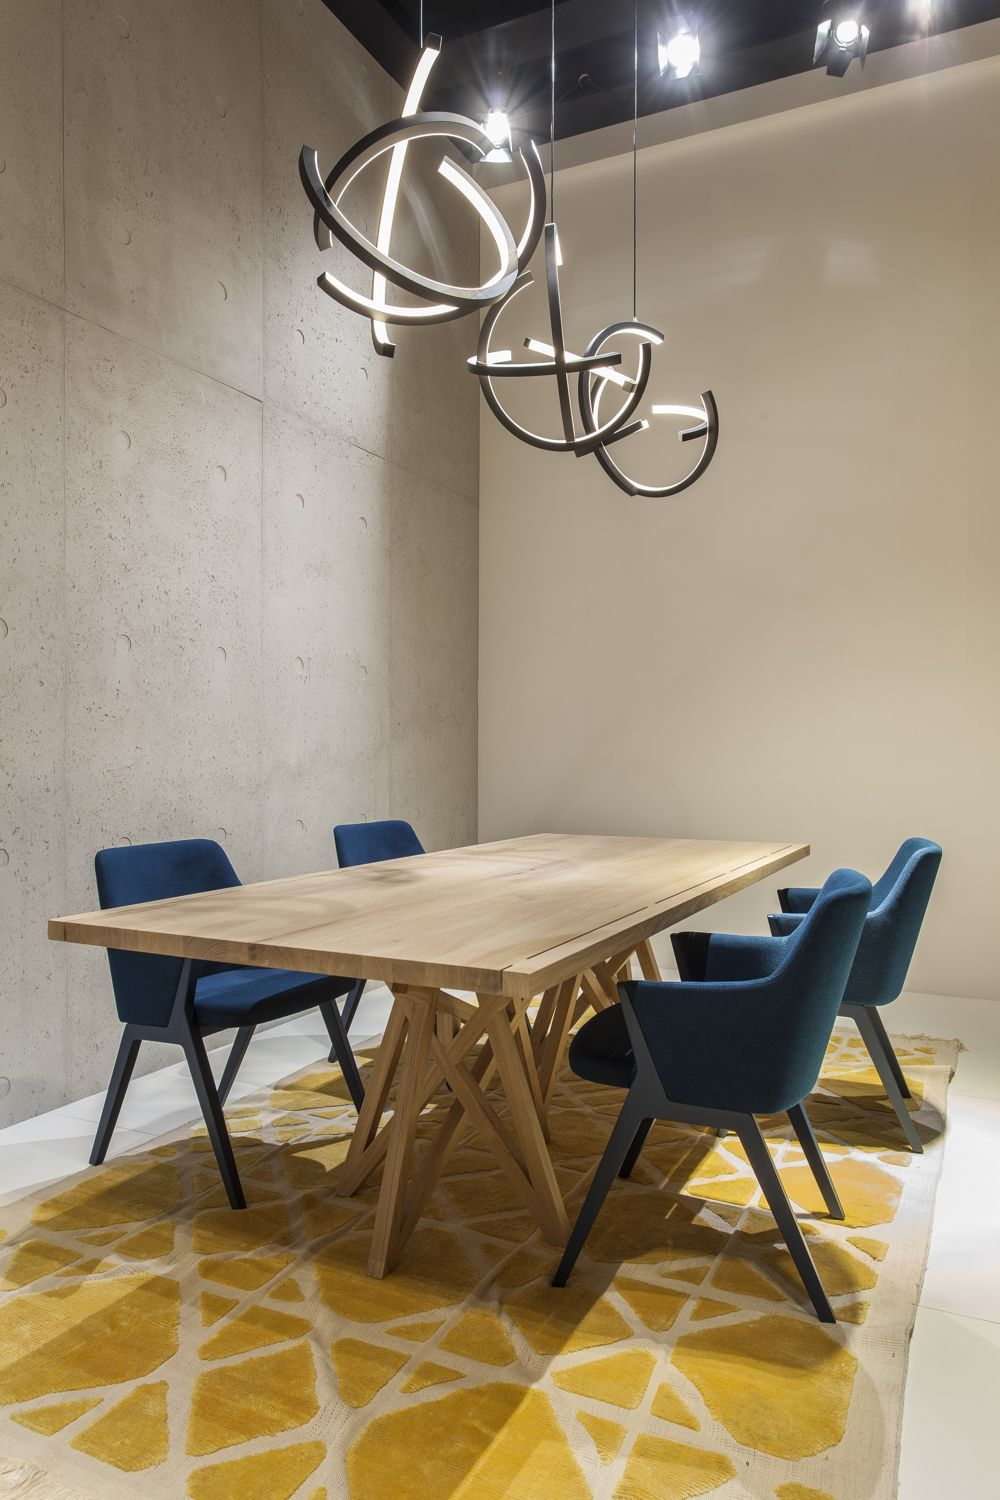 Roche Bobois At The Imm Cologne Fair Saga Dining Table Designed